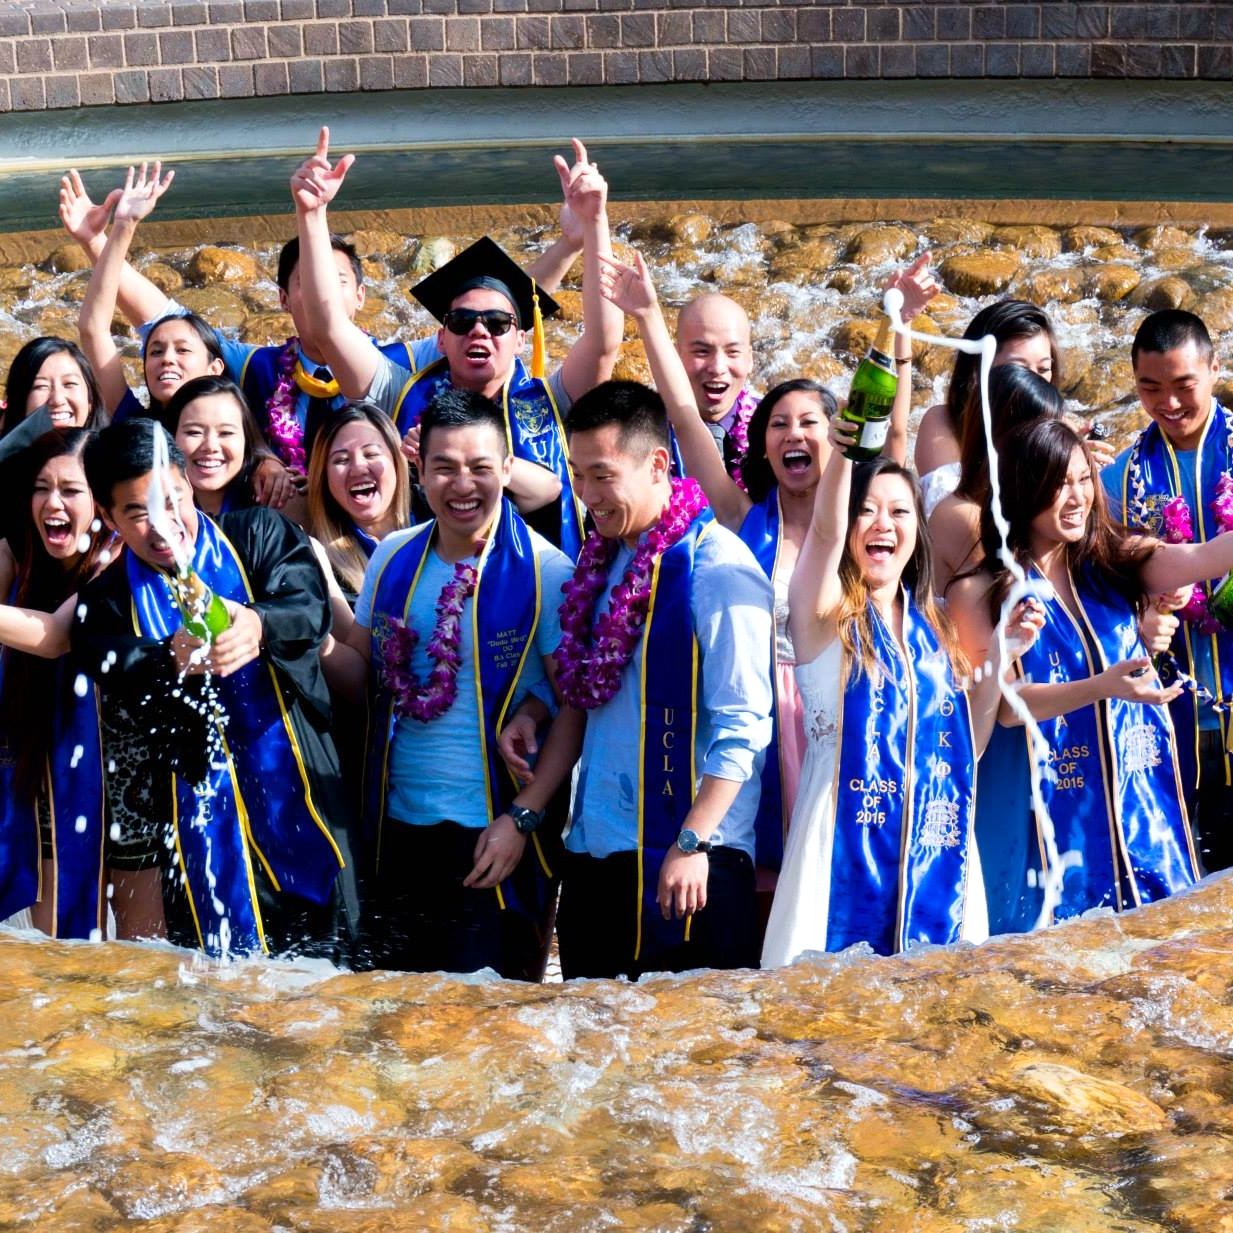 6.14.2015 Inverted Fountain Graduation Tradition with APIG